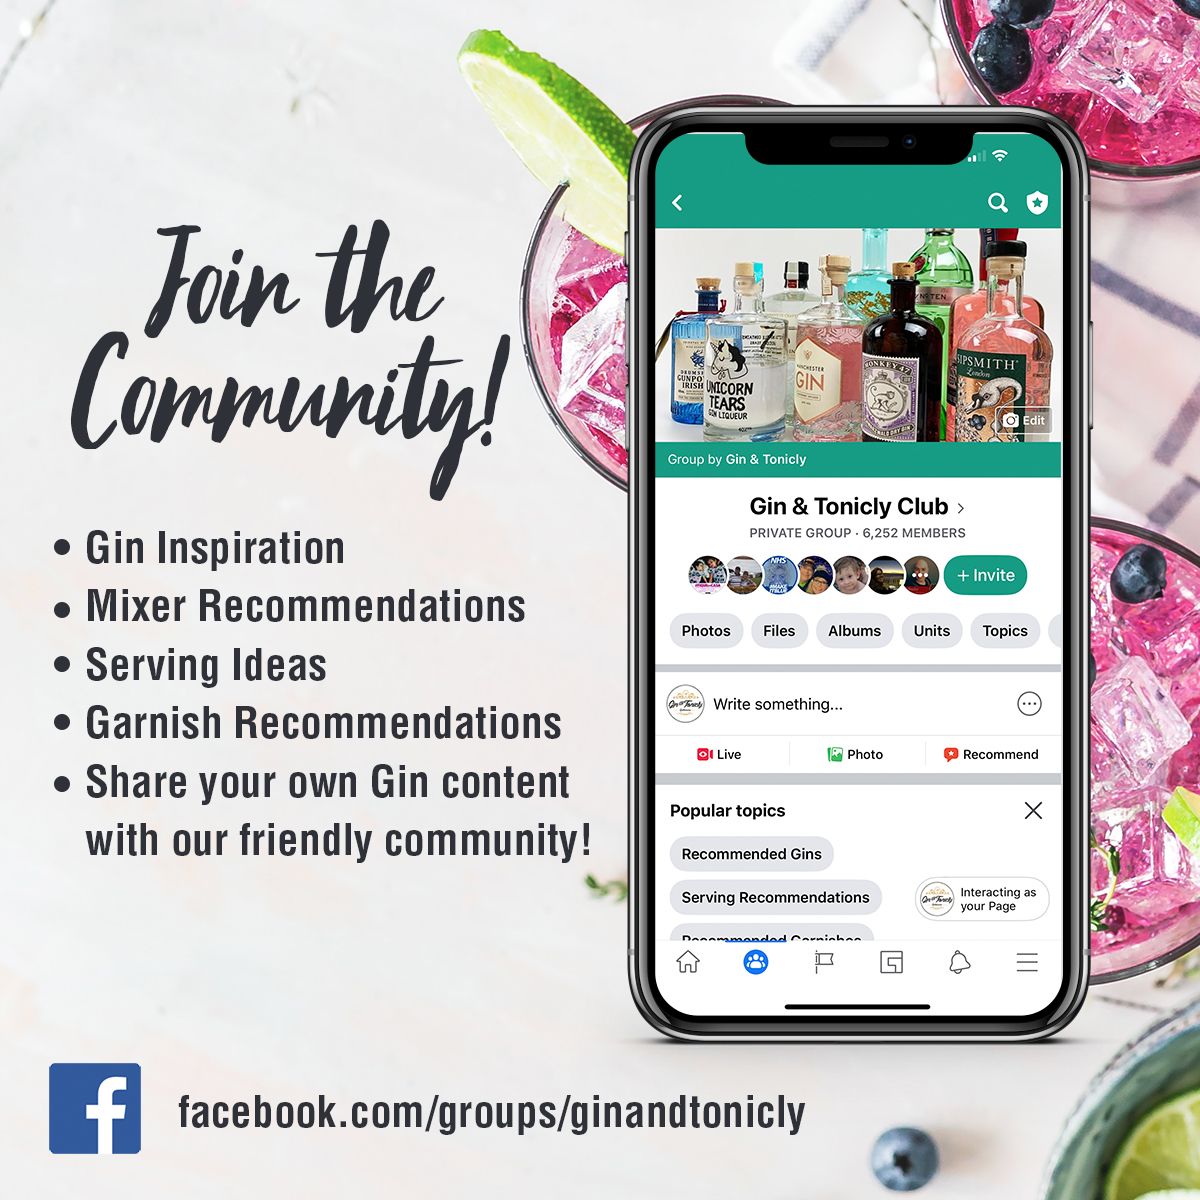 Gin & Tonicly Club Facebook